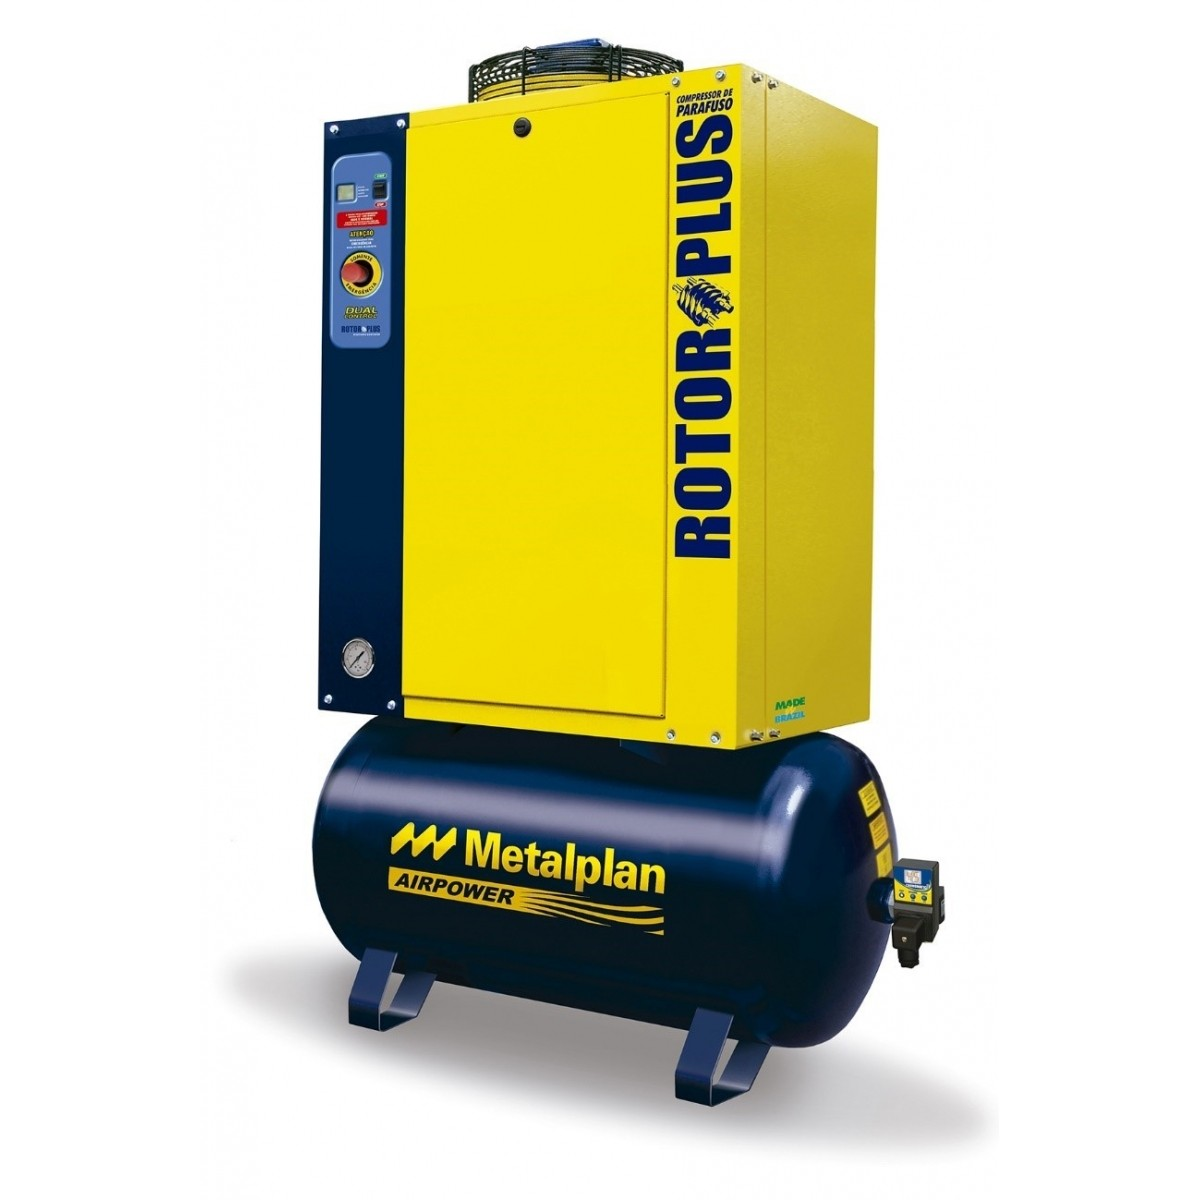 Compressor de ar parafuso rotor plus 10HP-380V-7,5BAR-97LTS